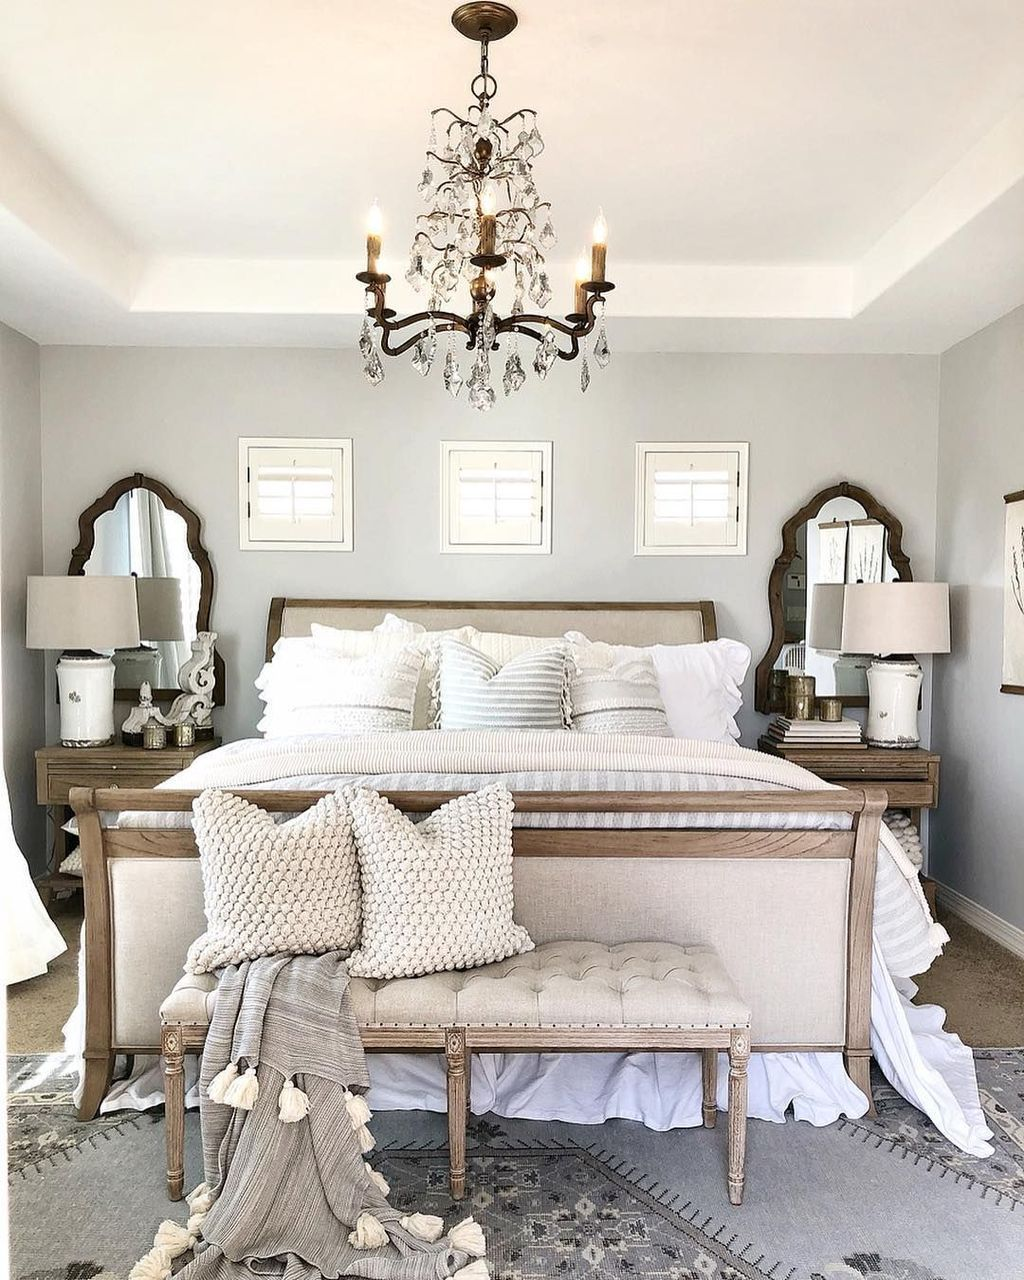 Romantic Bedroom Curtains: 38 Lovely Romantic Master Bedroom Decorating Ideas